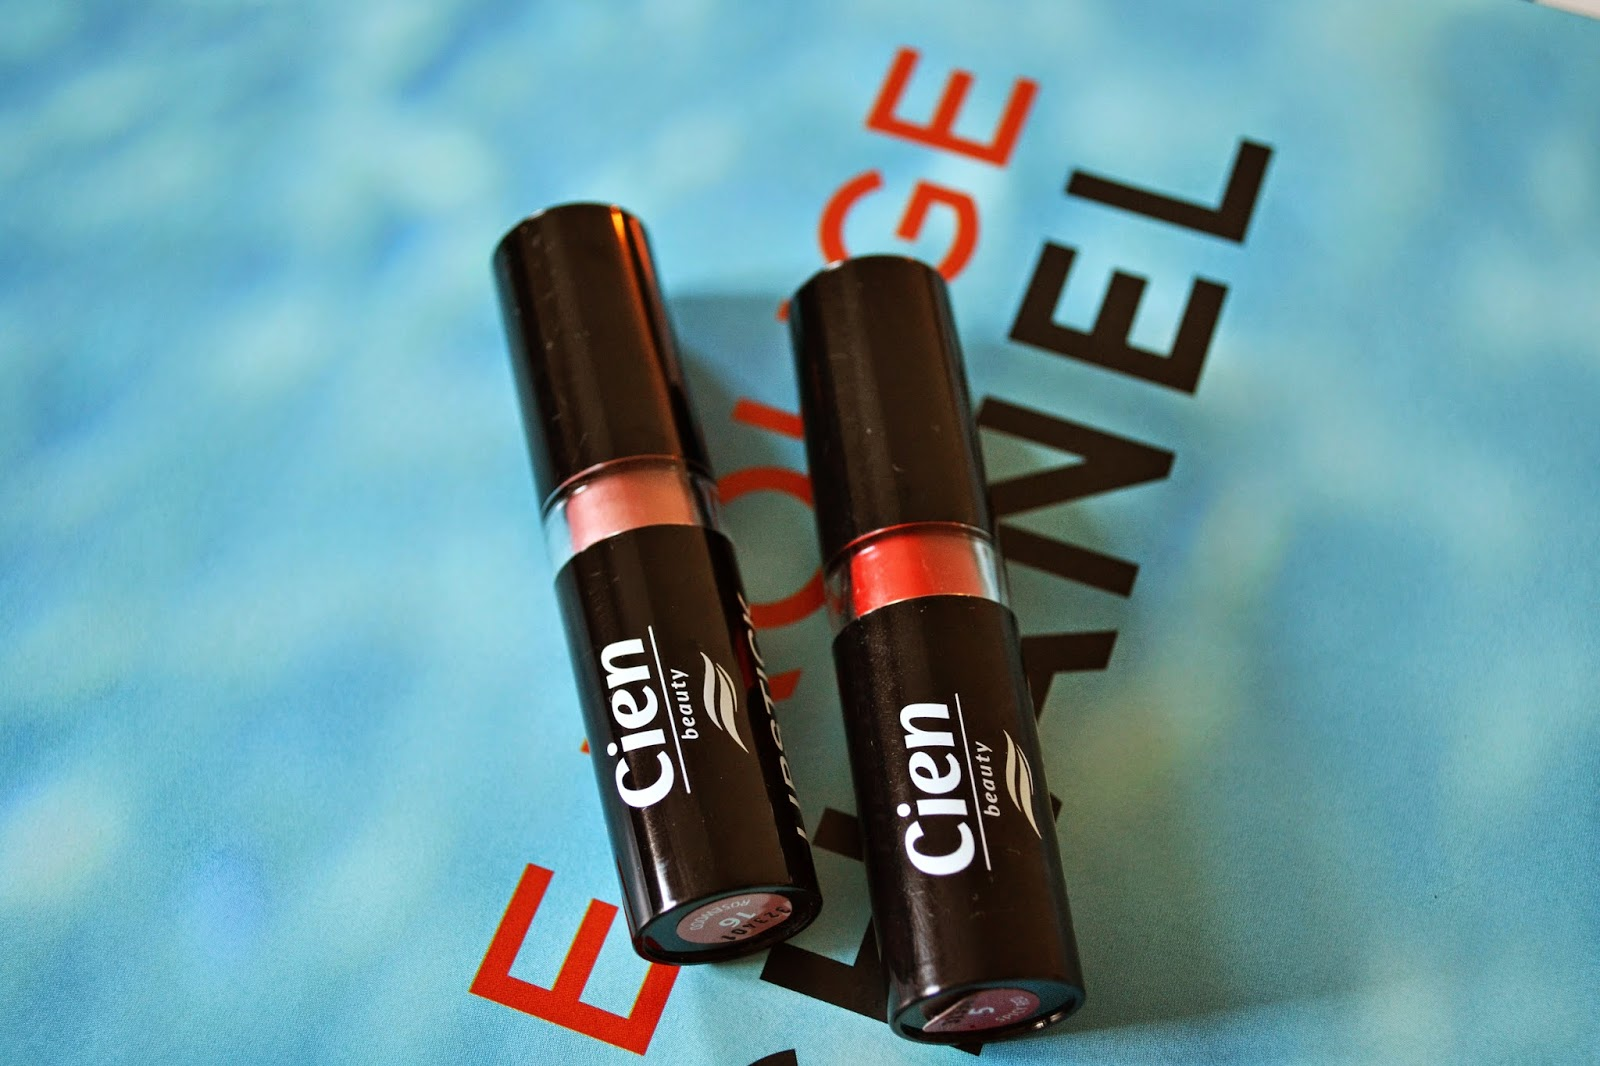 Cien Beauty Lipsticks in Rosewood & Spicy Red - Aspiring Londoner